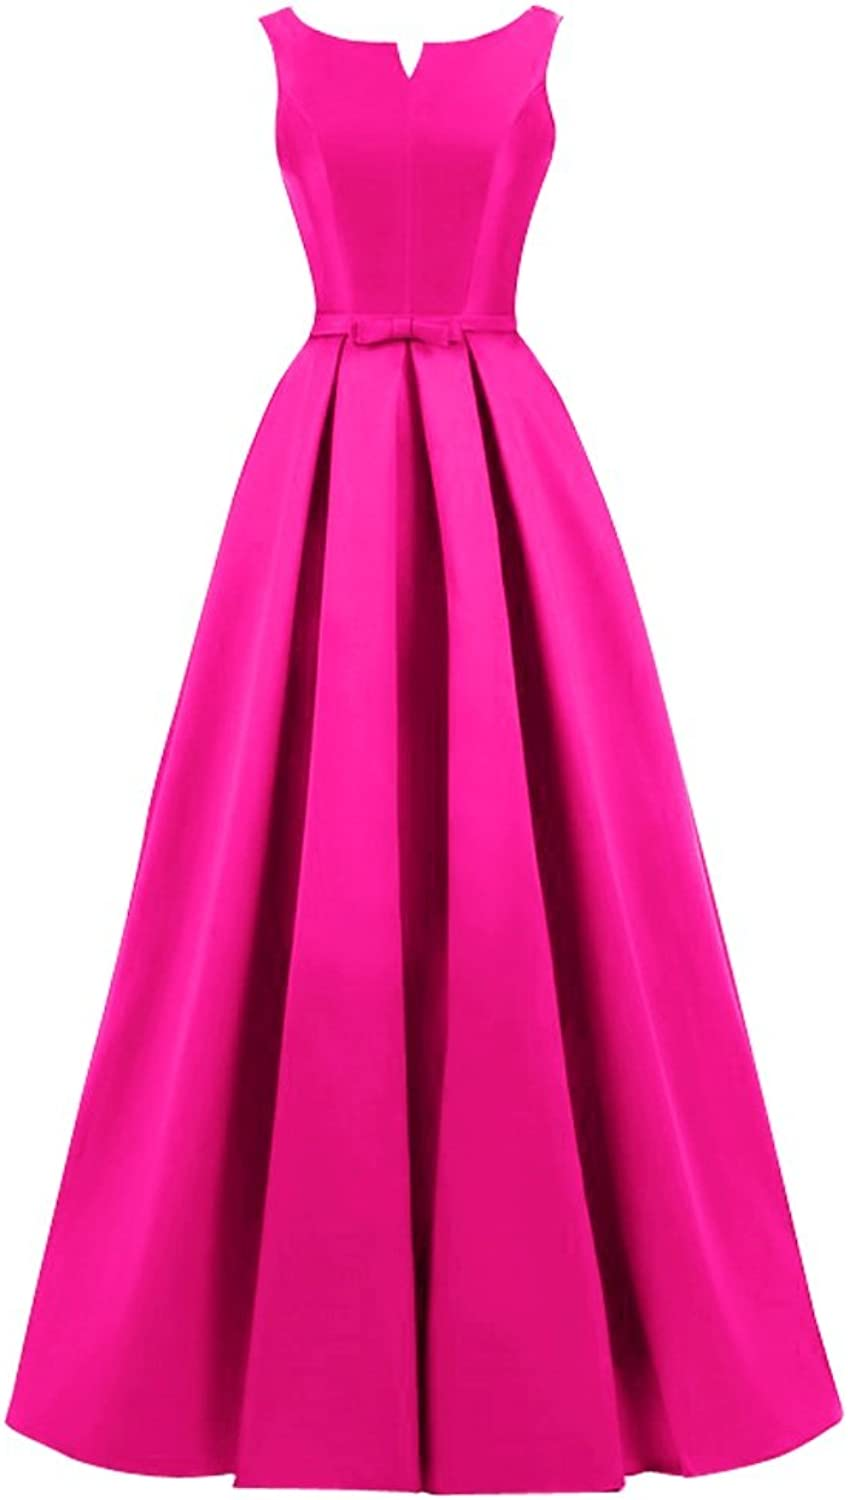 KAMA BRIDAL Women's Long A Line Satin Prom Gown Lace up Evening Dress with Bow